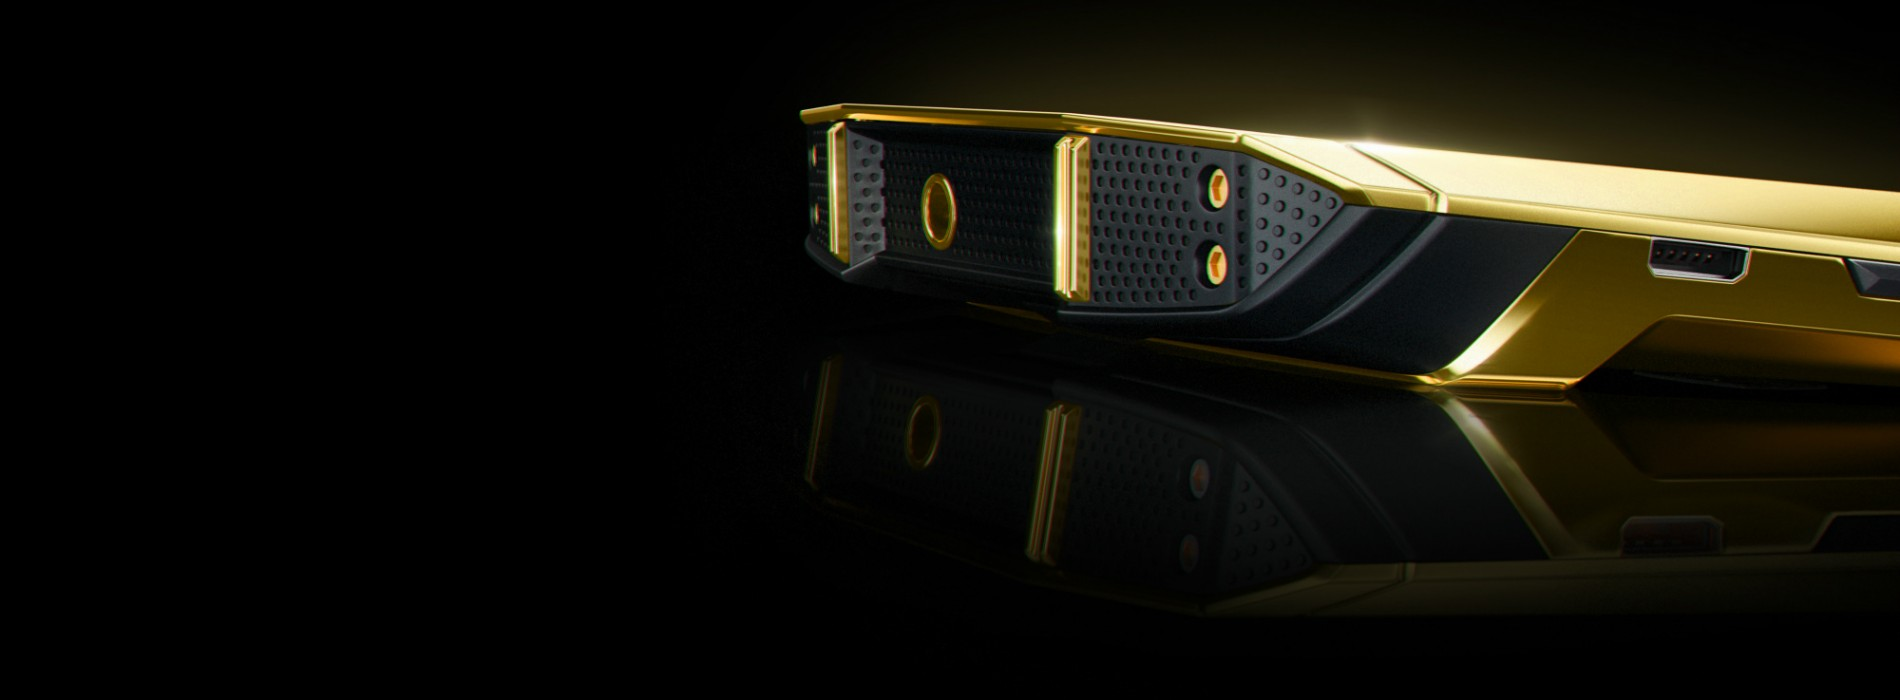 Antares: The $4,000 Lamborghini Android smartphone you'll never own